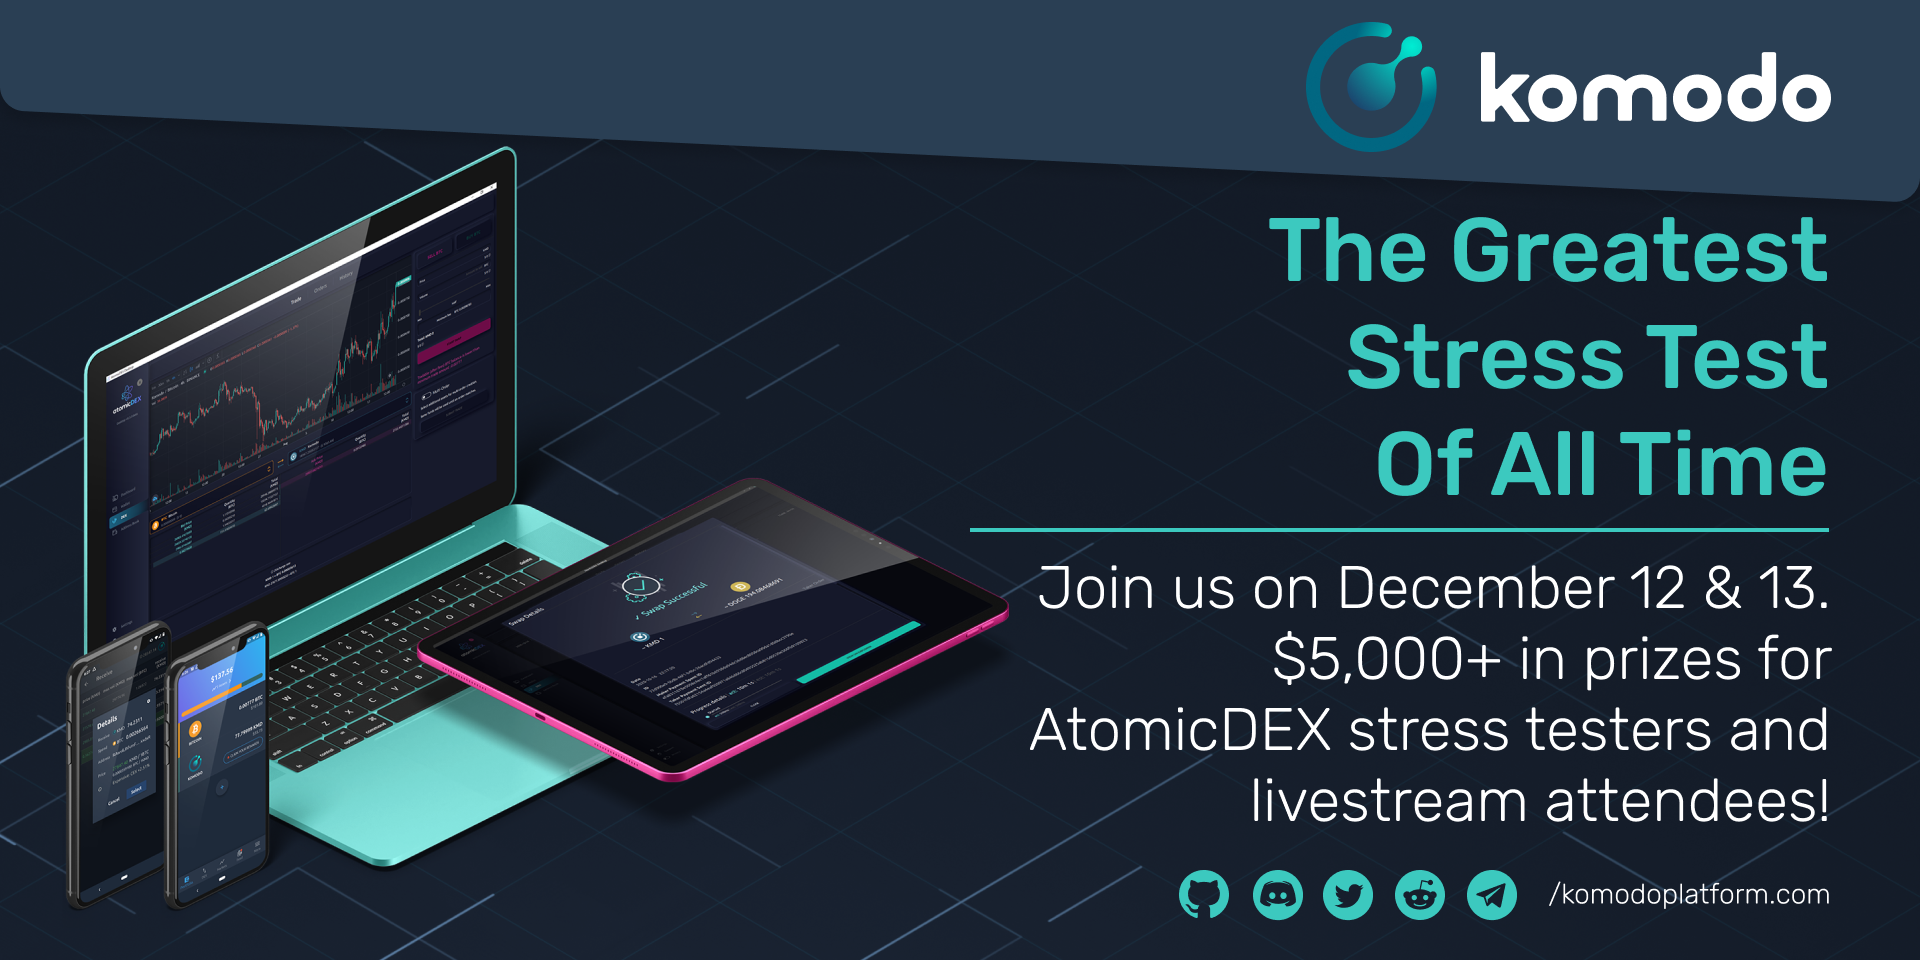 The Greatest Stress Test of All Time For AtomicDEX